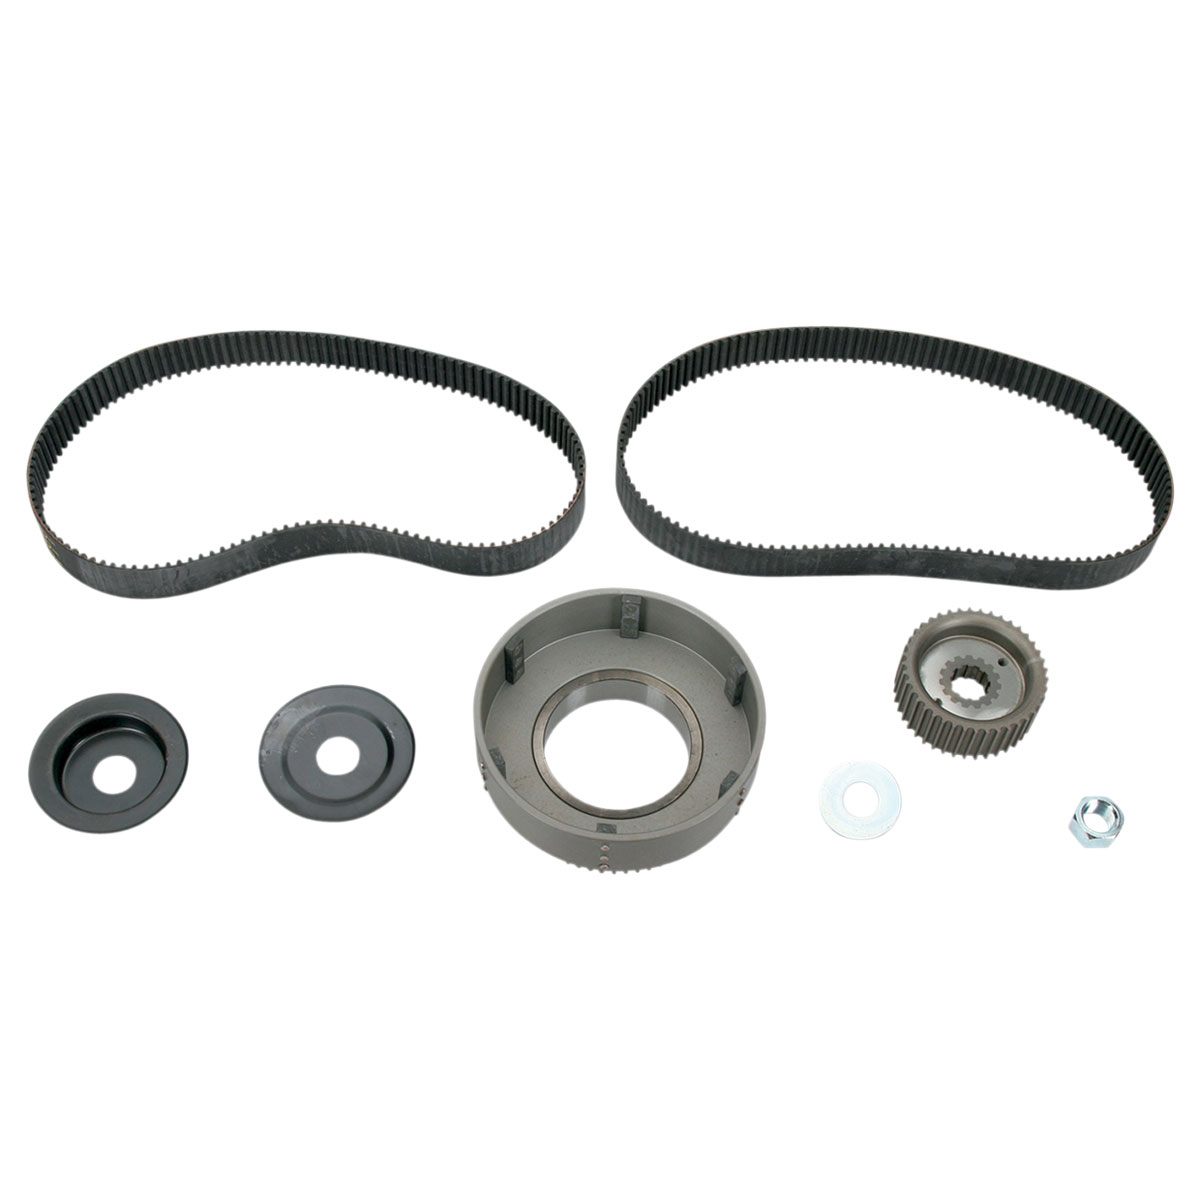 BDL 8mm 1-1/2″ Kit for Kick Start (4-Speed)